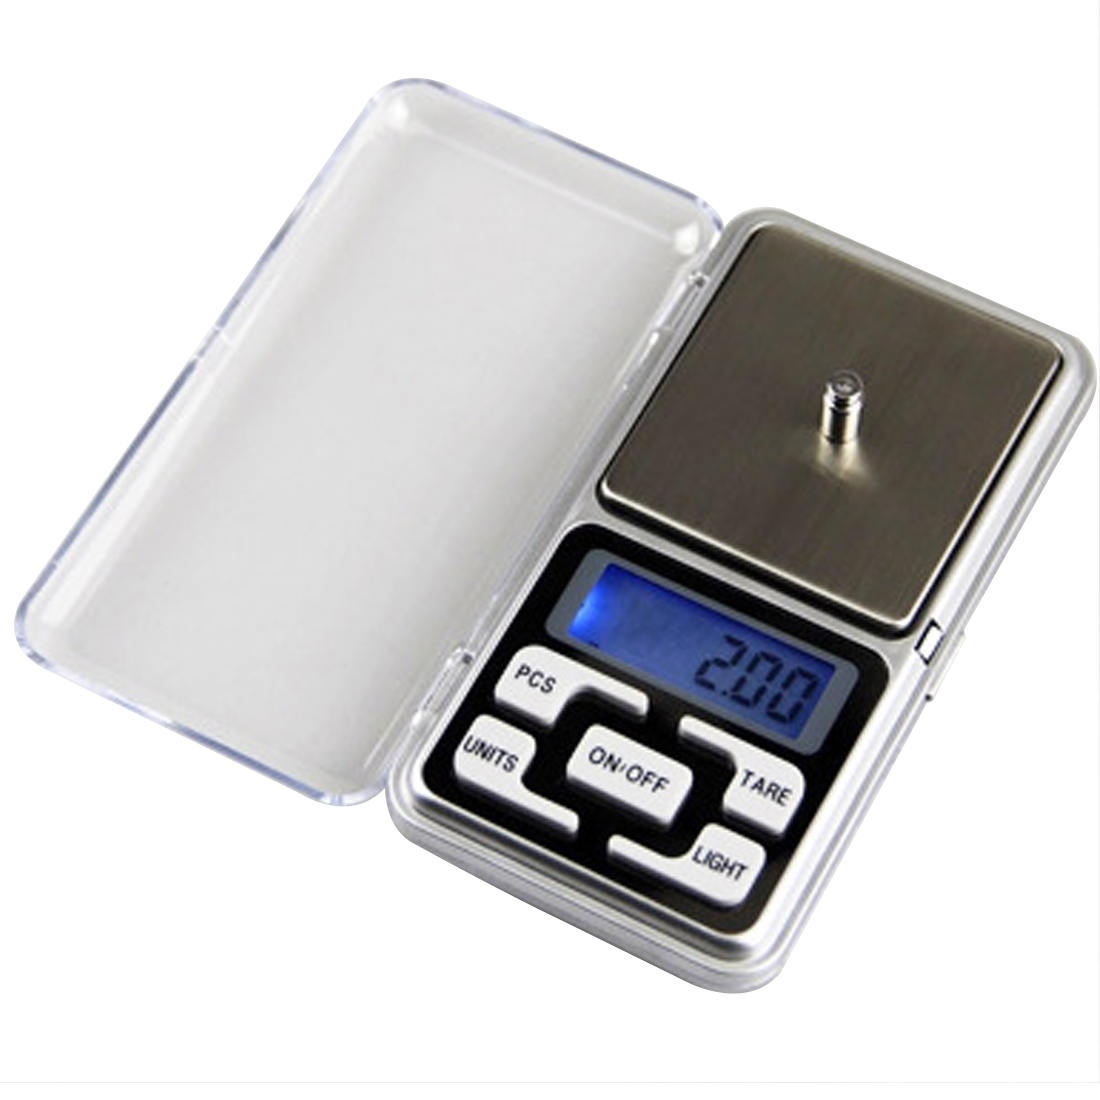 New  200g x 0.01g Mini Precision Digital Scales Portable scales Sterling Silver Scale Jewelry 0.01 Weight Electronic Scales Весы